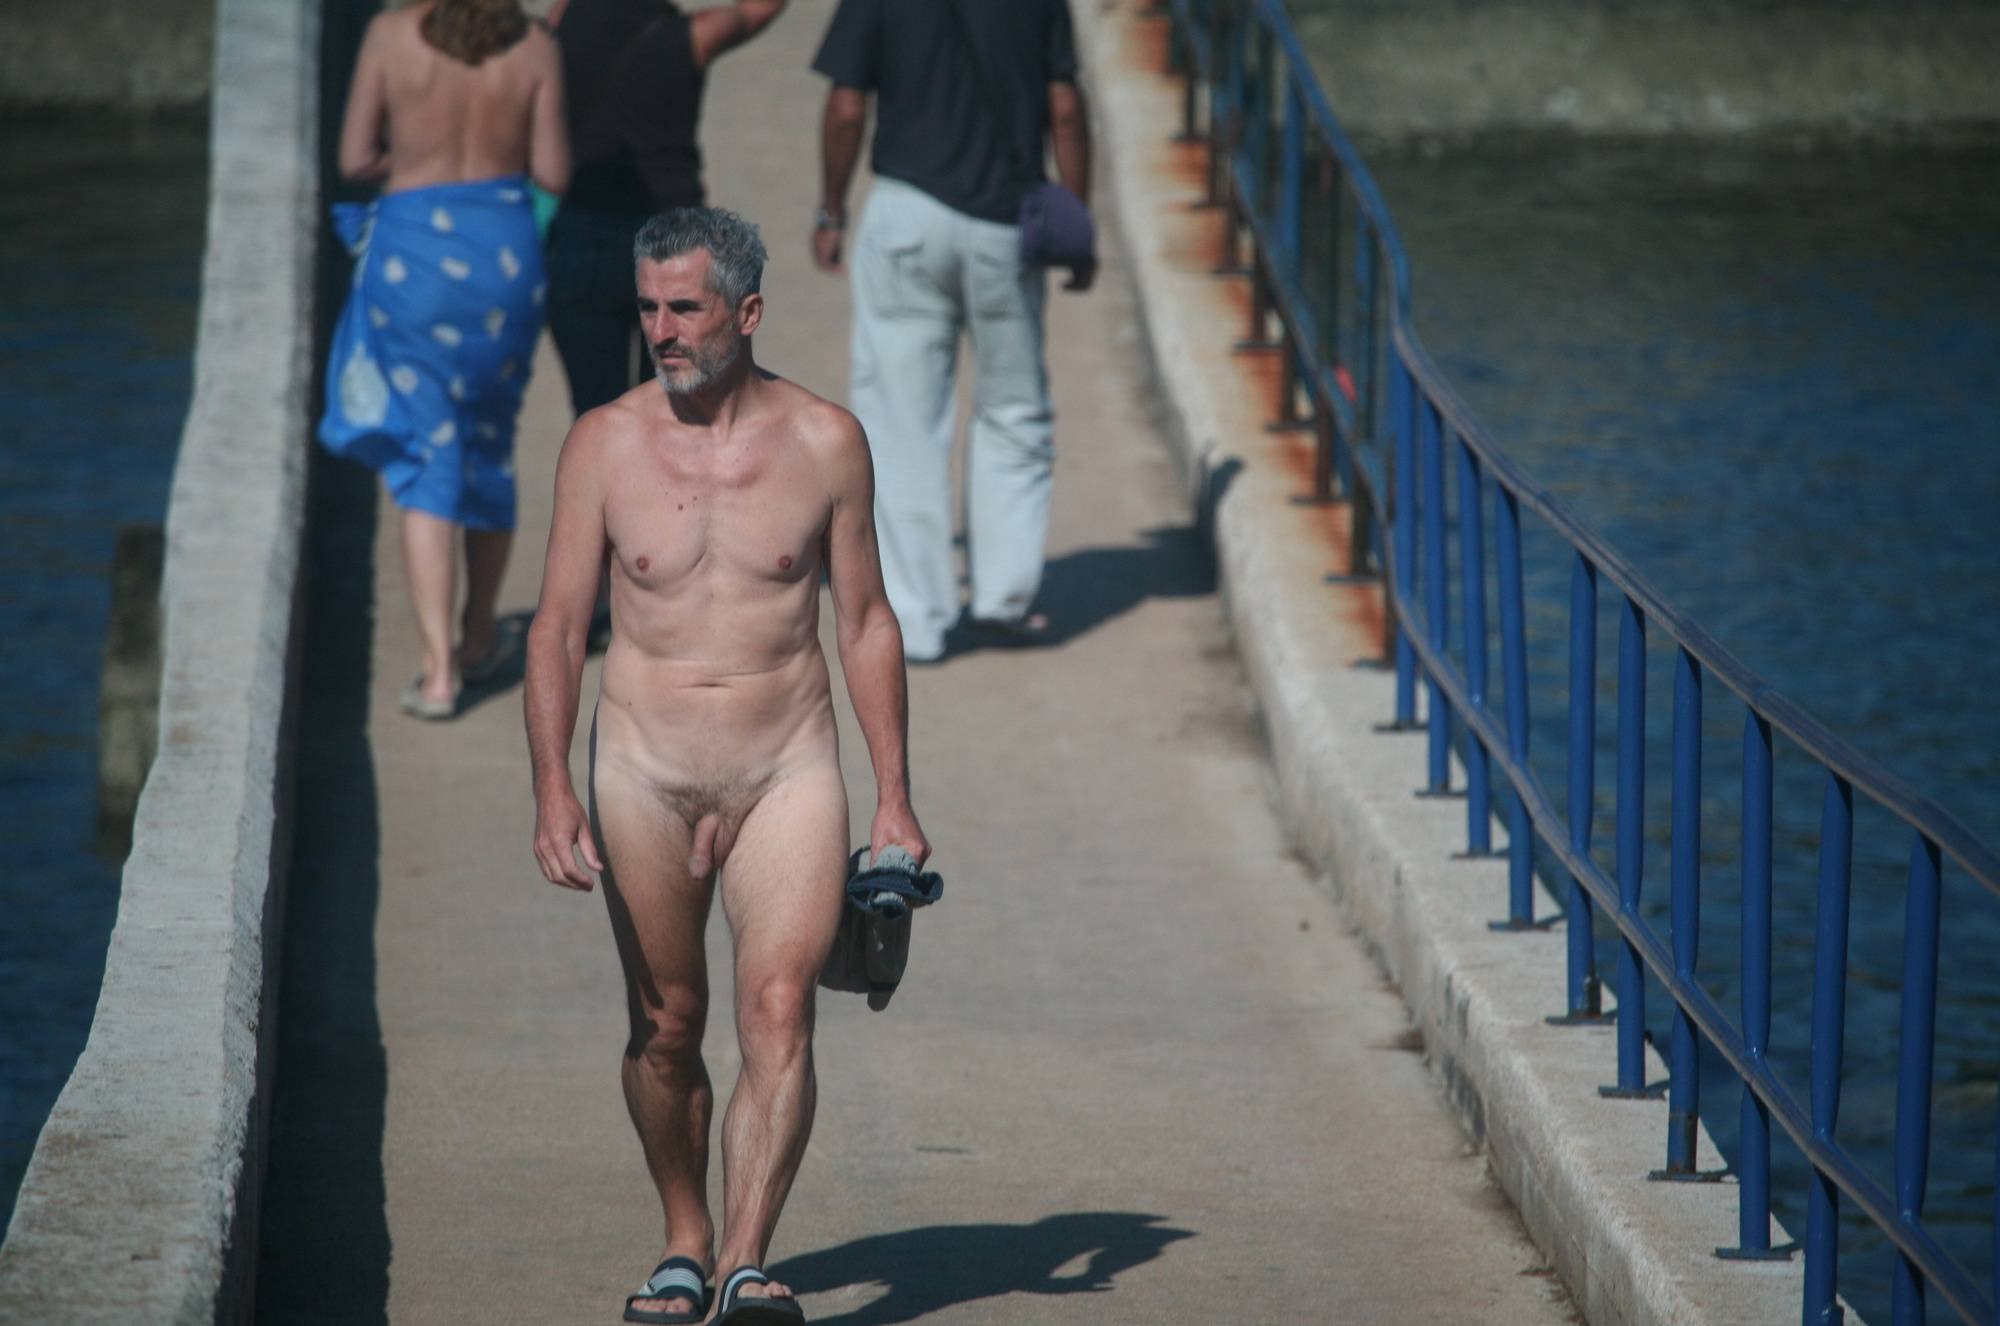 Pure Nudism Pics Pier FKK Bridge Crossing - 1